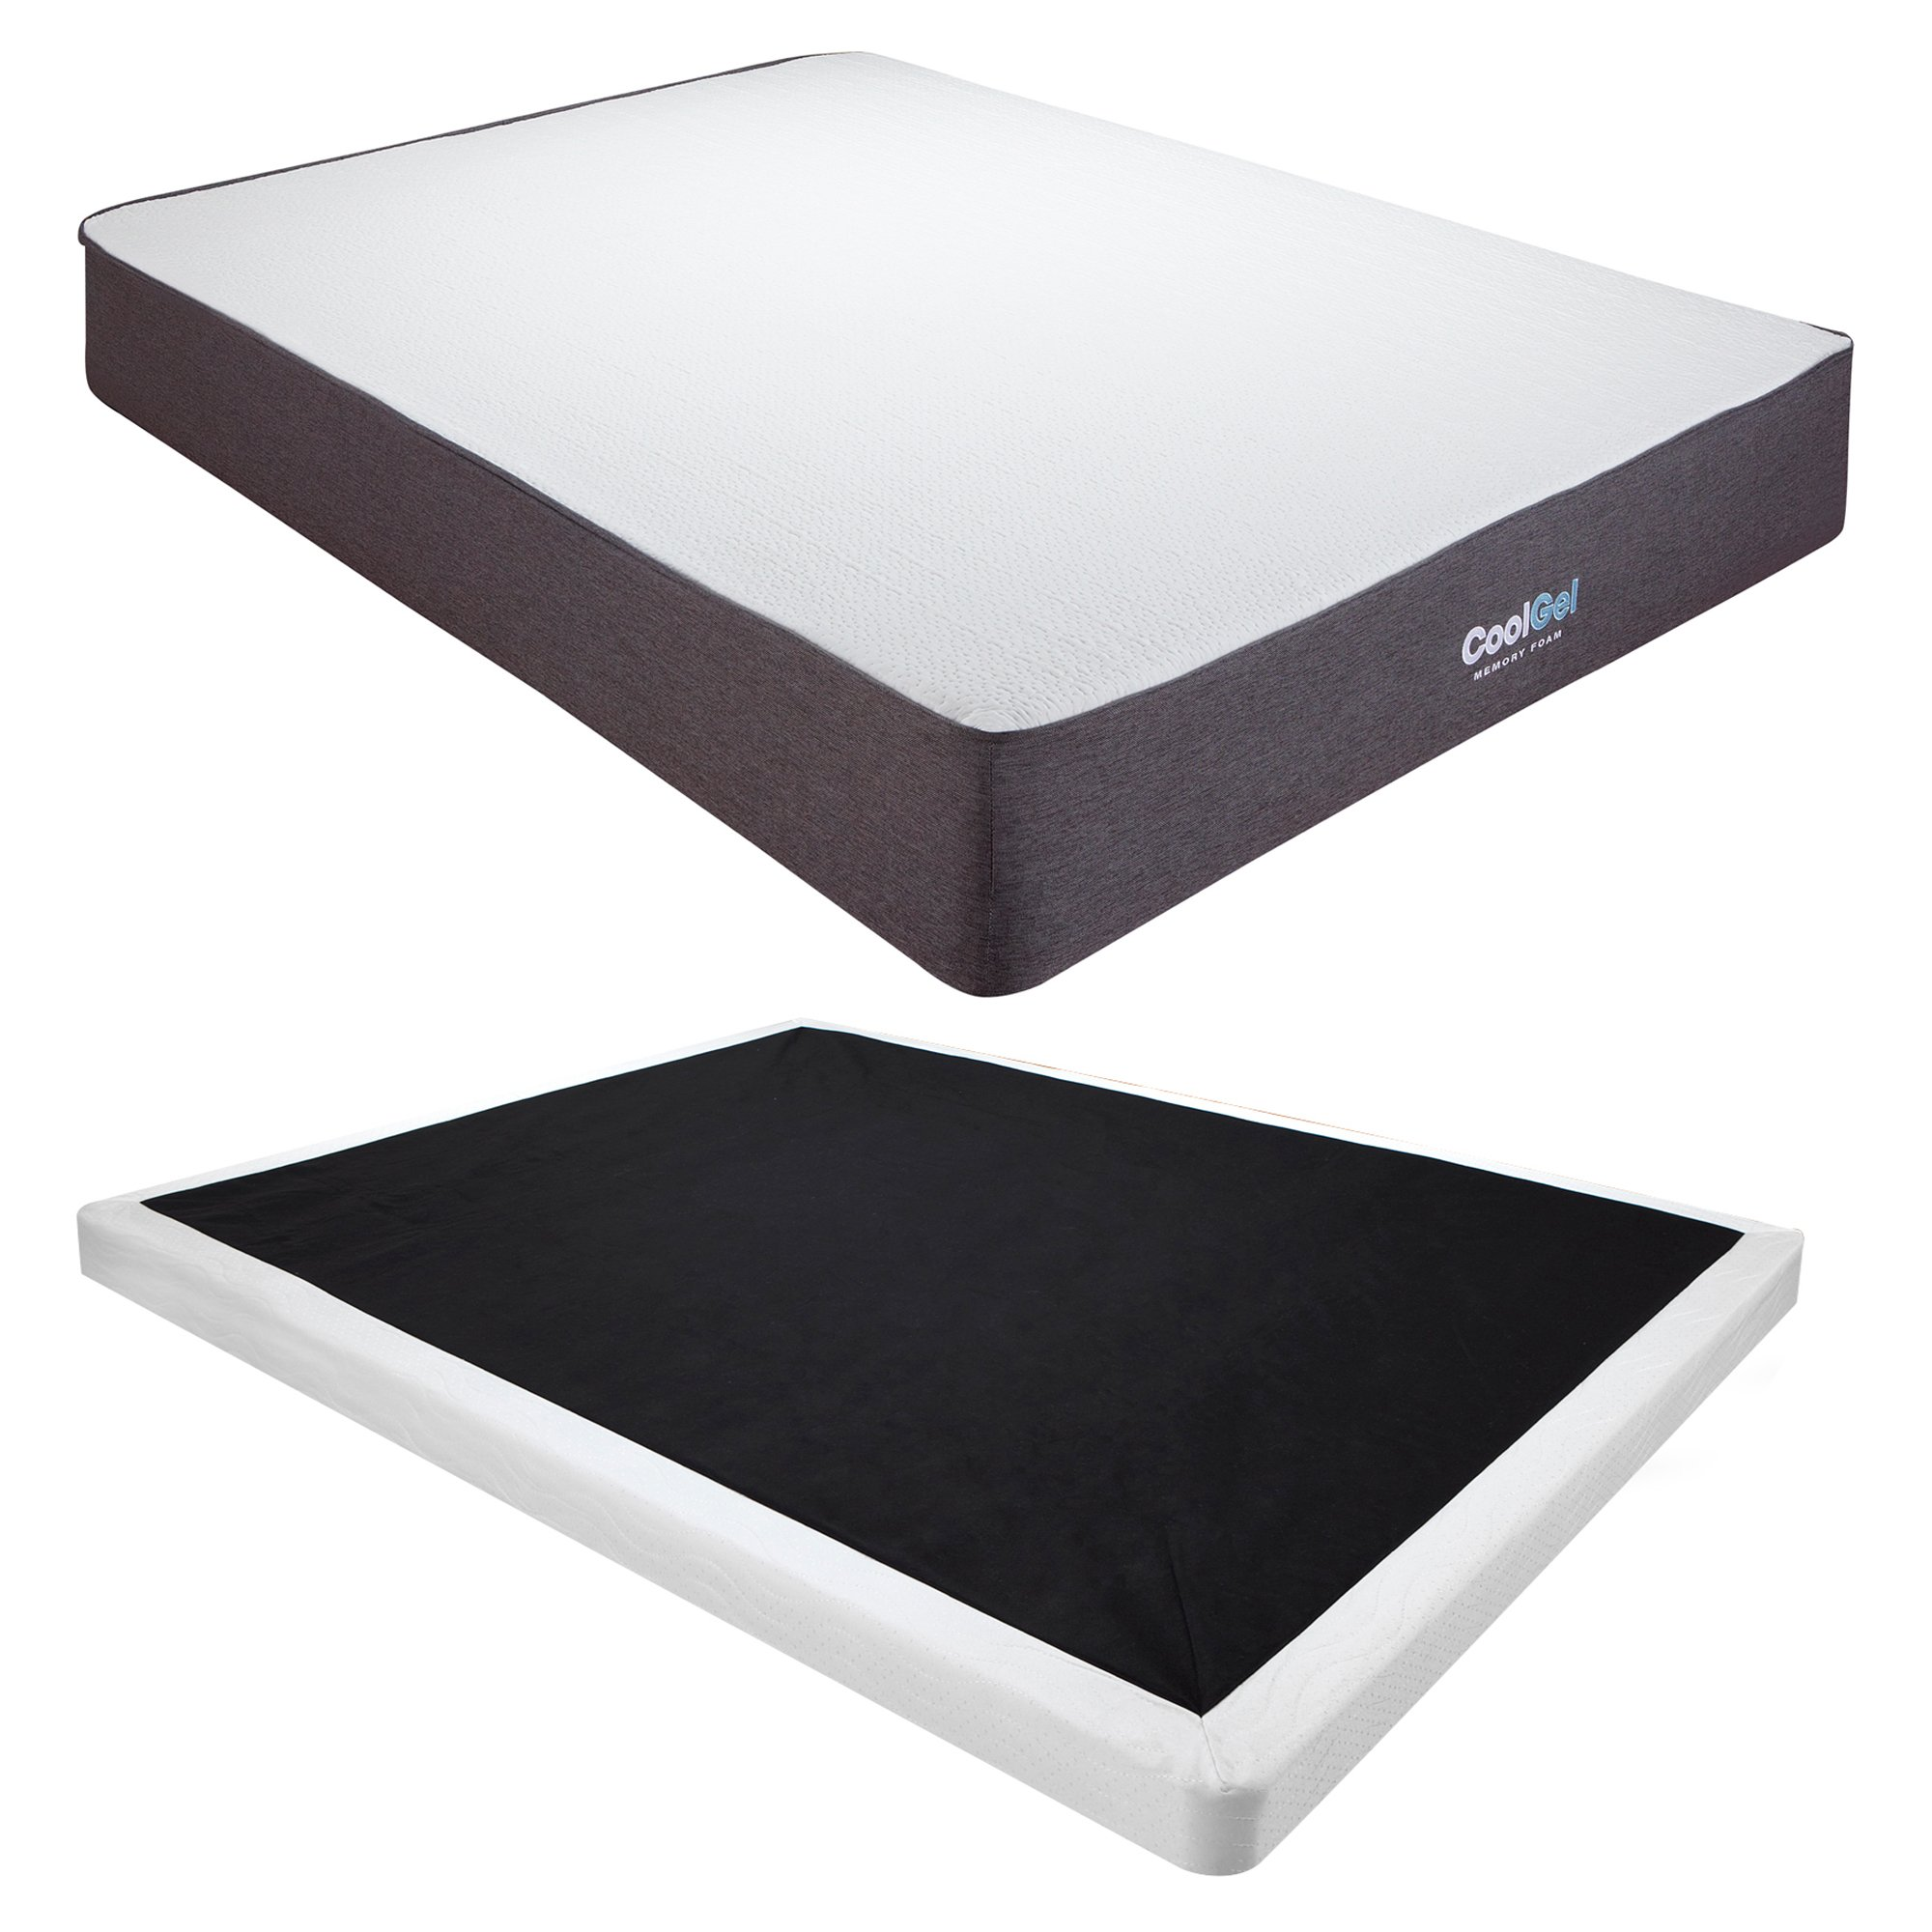 Classic Brands Cool Gel Ventilated Gel Memory Foam 10.5-Inch Mattress with 4-Inch Foundation by Classic Brands